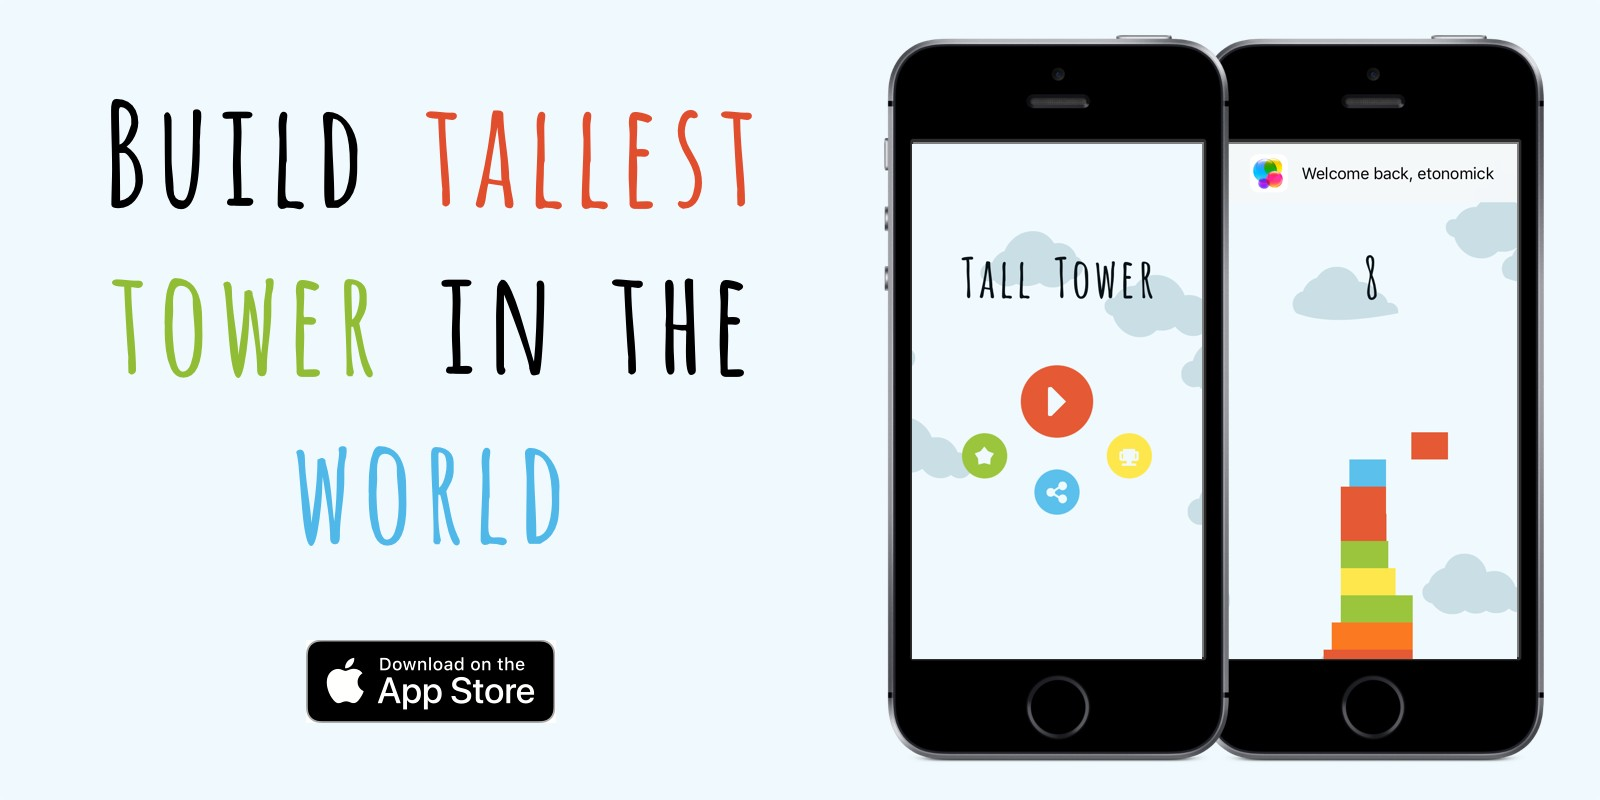 Tall Tower - iOS Game Source Code